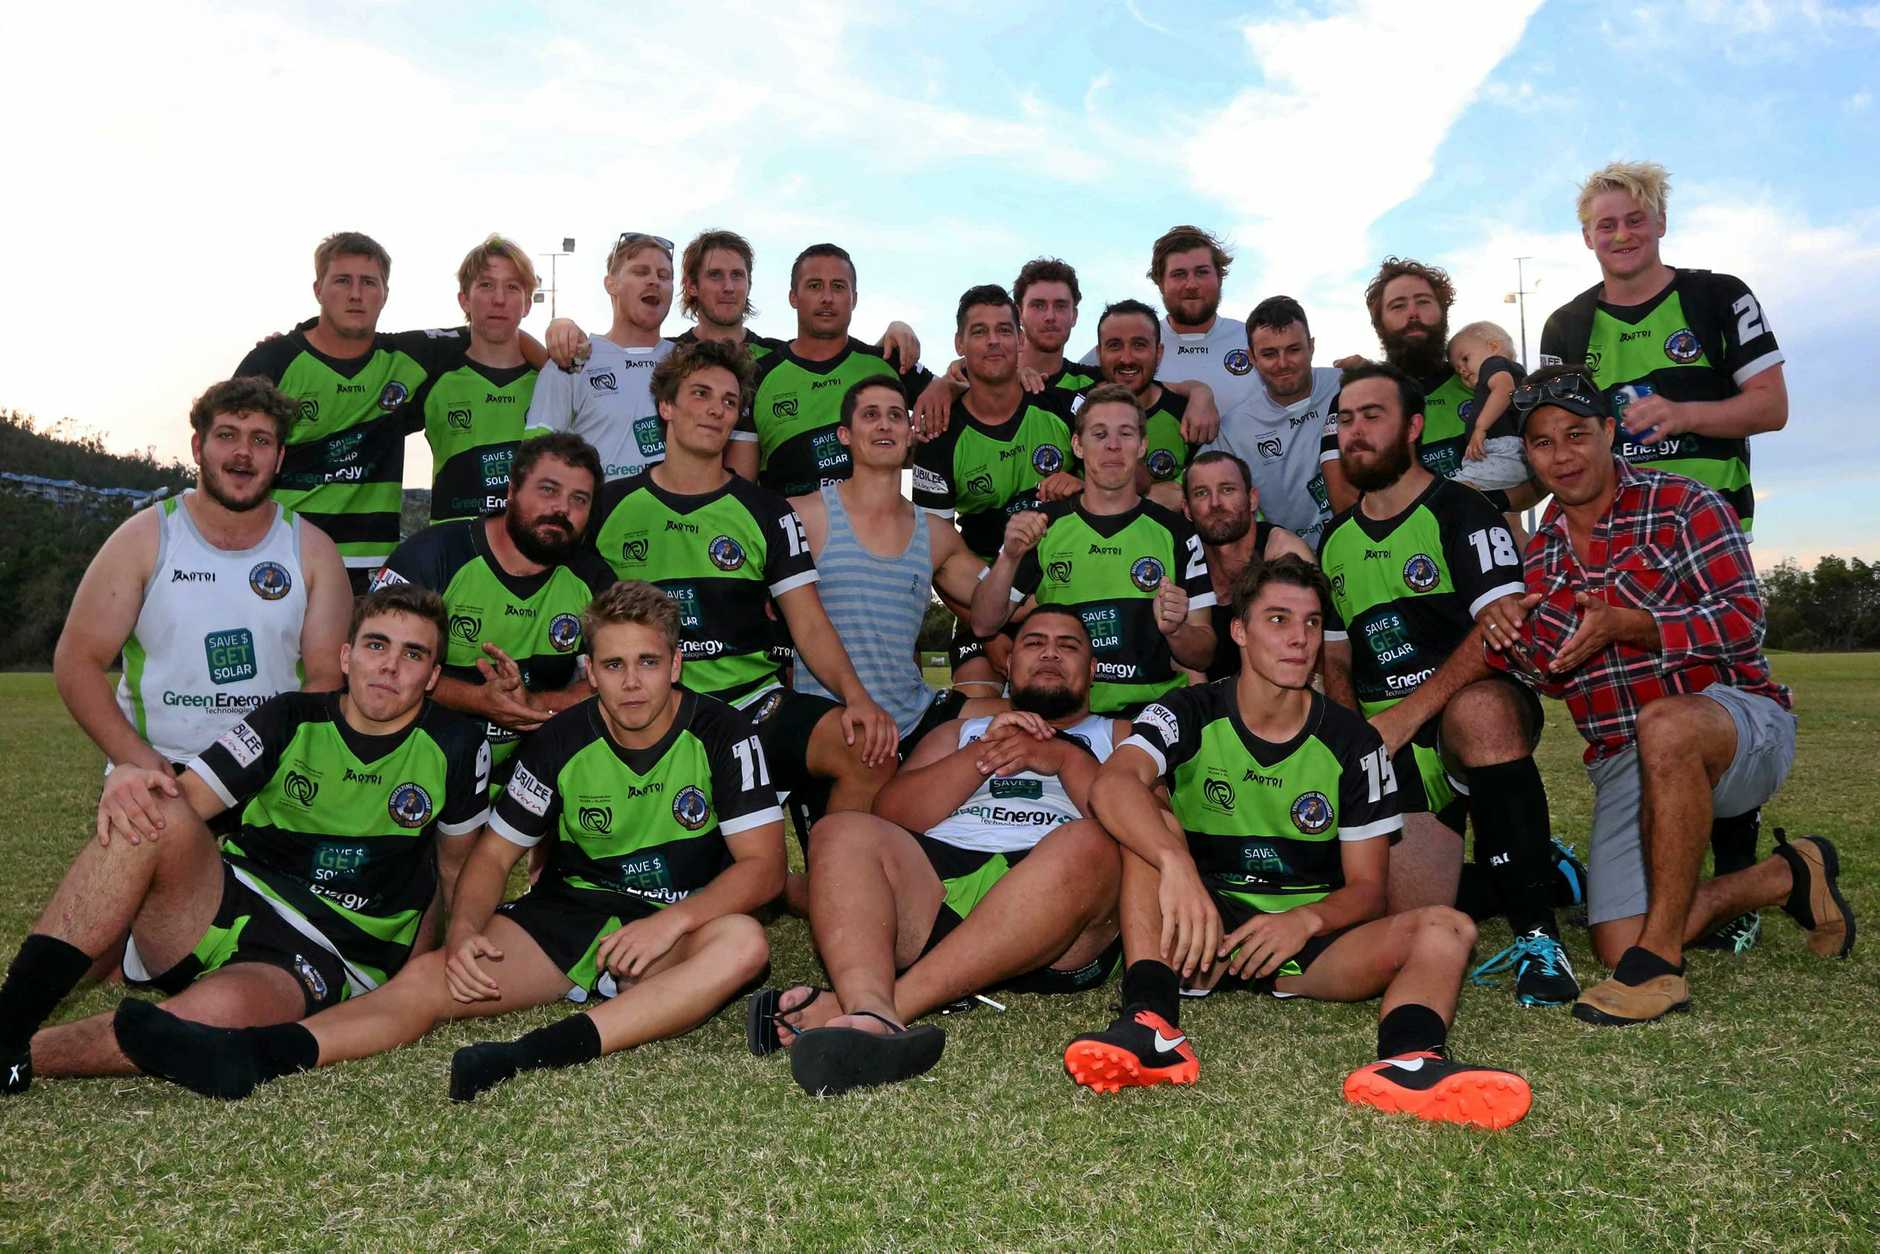 BOW OUT: The Whitsunday Raiders bow out after a 35-13 loss to the Kuttabul Camelboks.